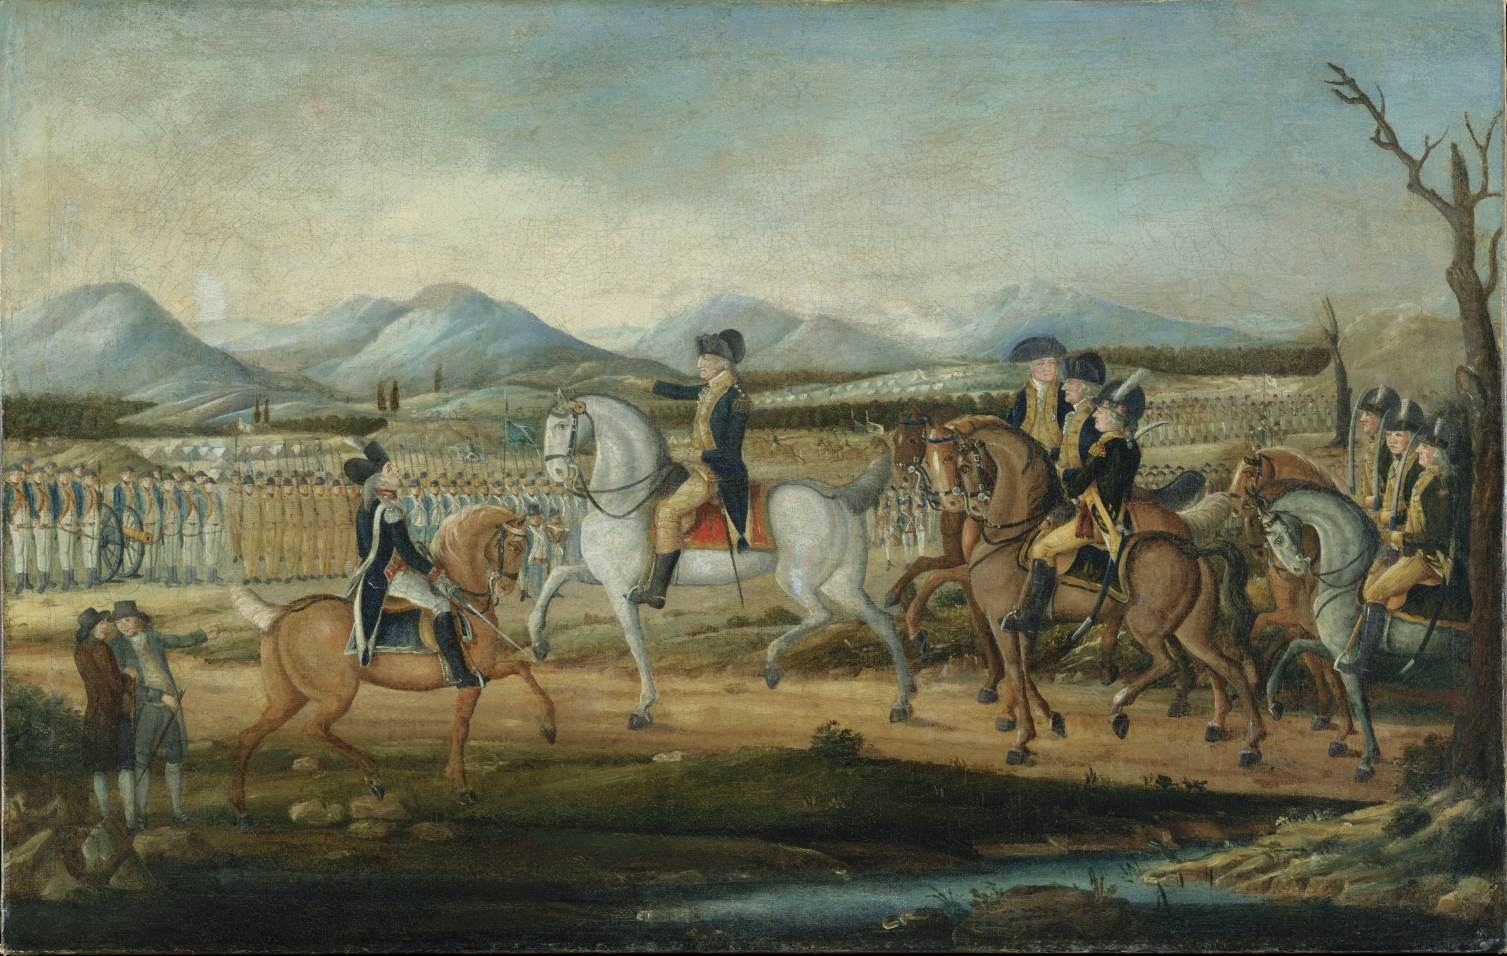 Washington reviewing the troops at Fort Cumberland